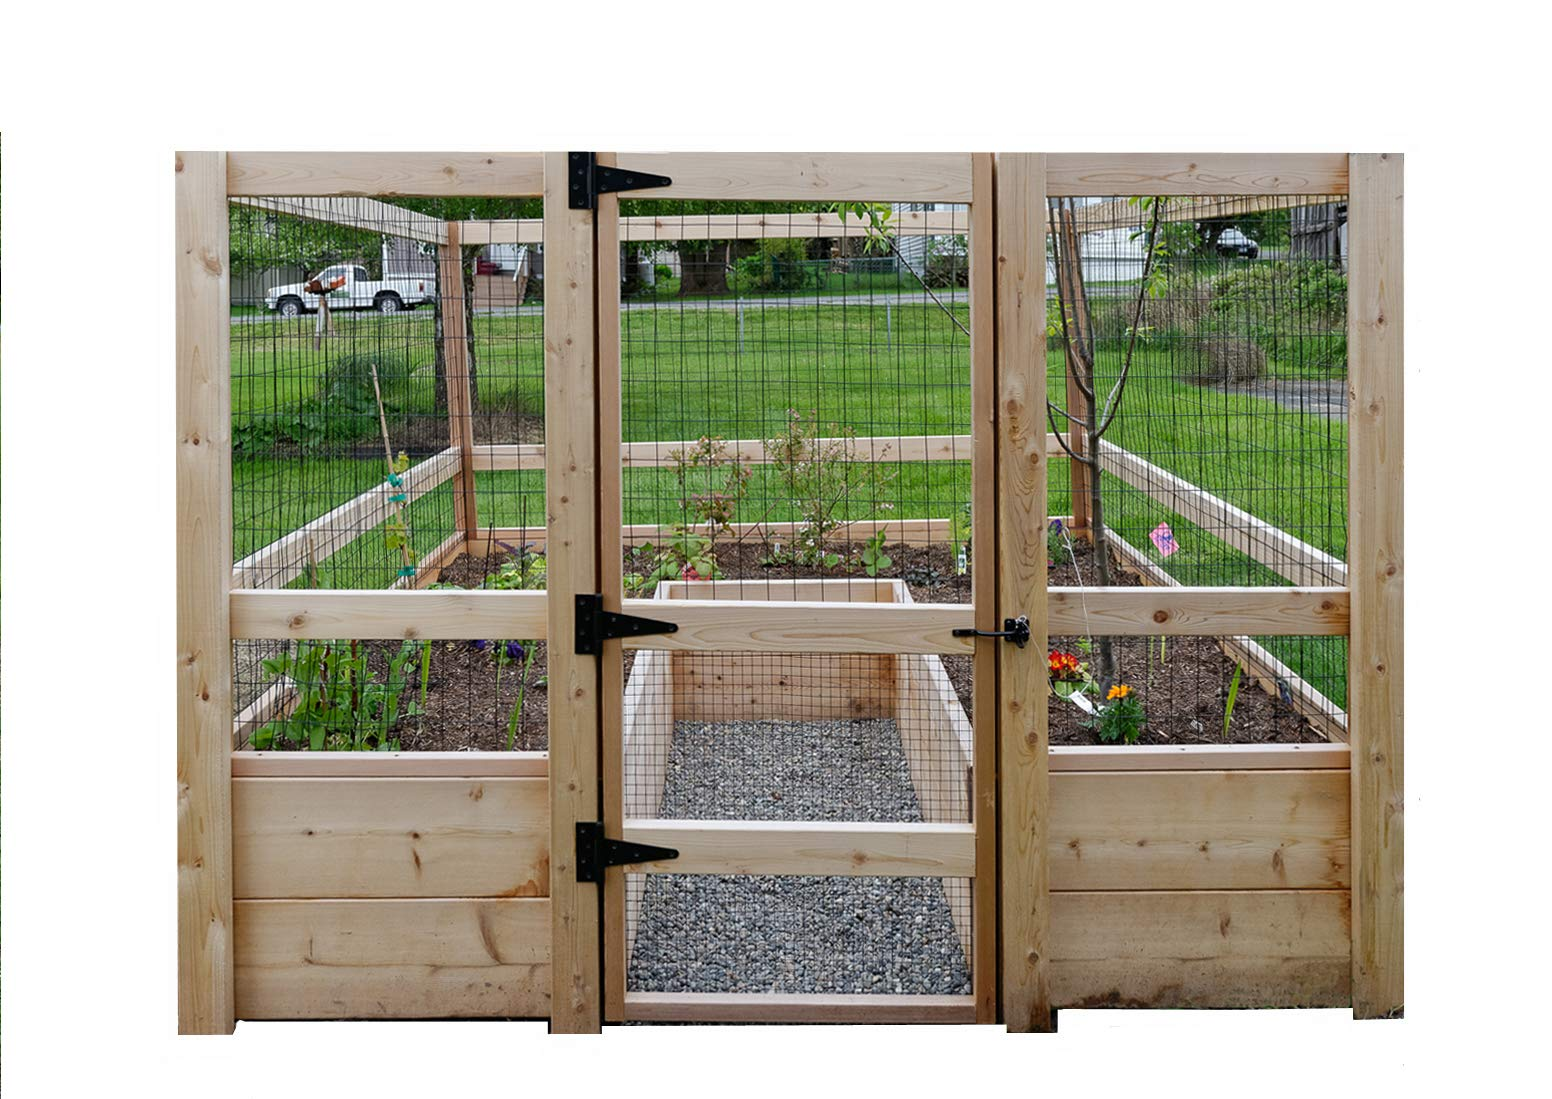 """Deer-Proof Just Add Lumber Vegetable Garden Kit - 8'x8' 1 DOES NOT INCLUDE LUMBER. Kit includes everything but the lumber: 8 Raised bed brackets, black nylon netting for fencing/trellis, black vinyl-coated steel wire for gate, ceramic-coated rust resistant screws, plus all other required hardware and detailed instructions Buy your own rough lumber locally - Build the ultimate vegetable garden with this kit. Required rough construction lumber : (10) 2""""x10""""x8'; (1) 2""""x10""""x6'; (6) 2""""x4""""x12'; (2) 2""""x4""""x8'; (3) 2""""x2""""x12'; (1) 2""""x2""""x8'; (4)1-5/8""""x1-5/8""""x12' (actual size). Note: the lumber boards will need to be further cut into the sizes described in the assembly instructions Gated garden keeps out deer, rabbits and dogs"""